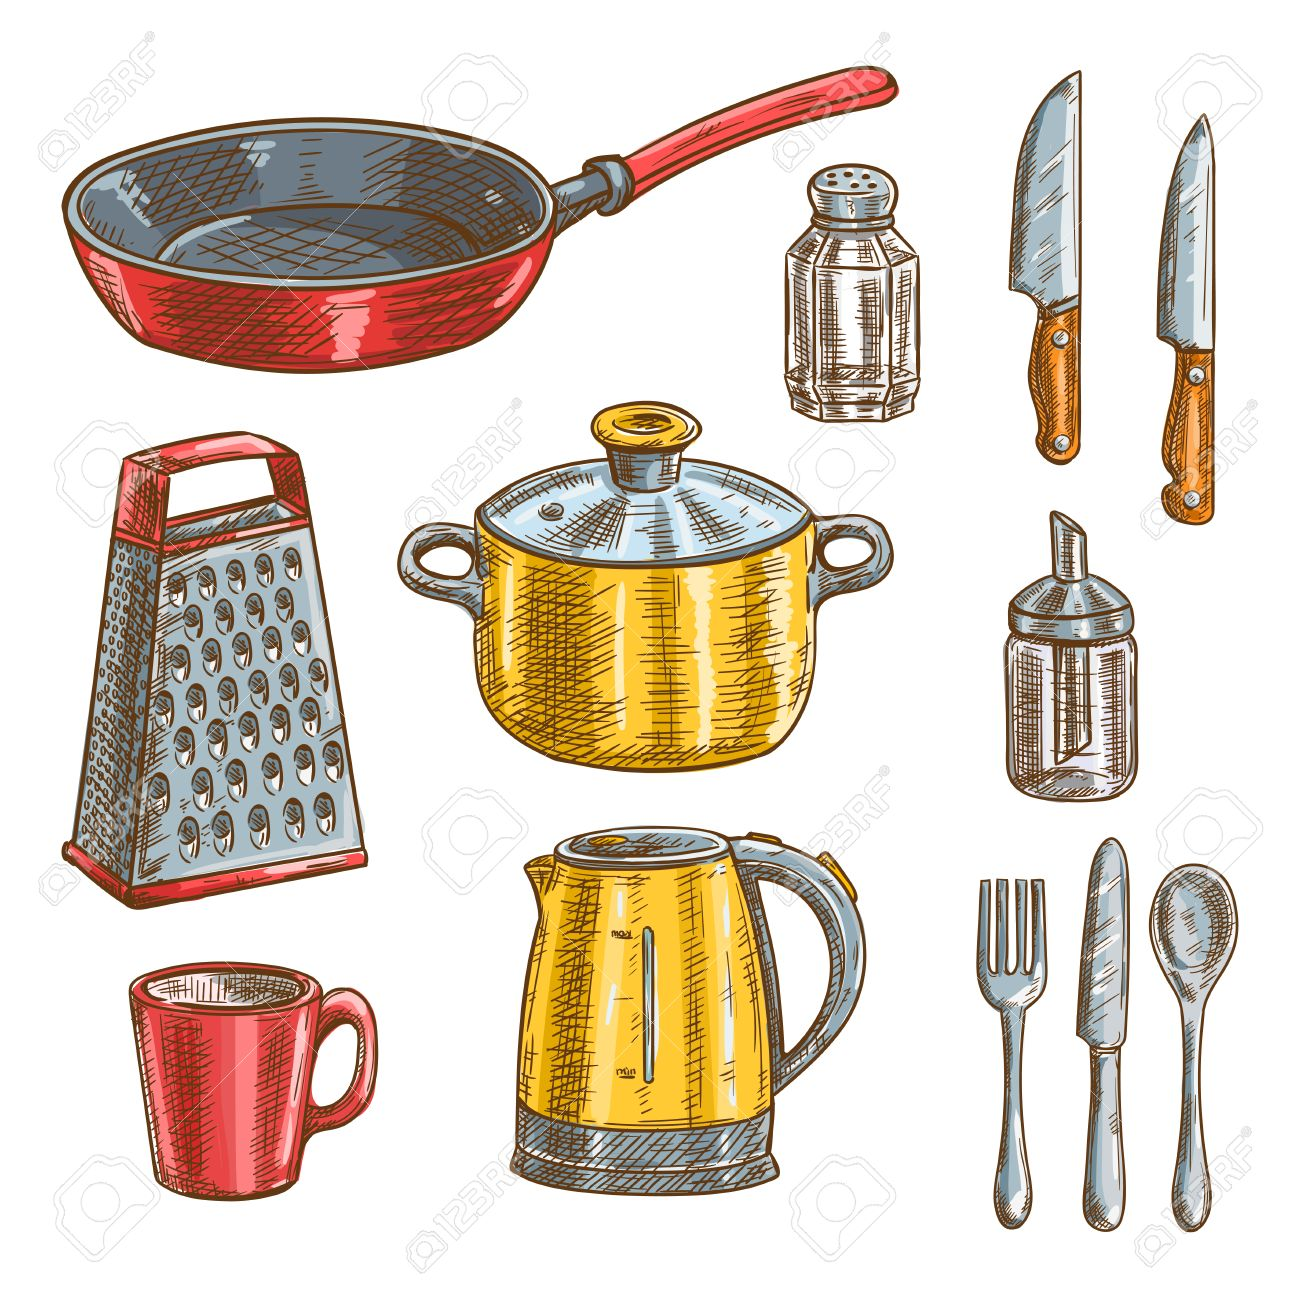 Kitchen and cooking utensils sketches of knife, spoon, fork, pot, frying pan, cup, grater, electric kettle, glass salt shaker and sugar dispenser - 64242445